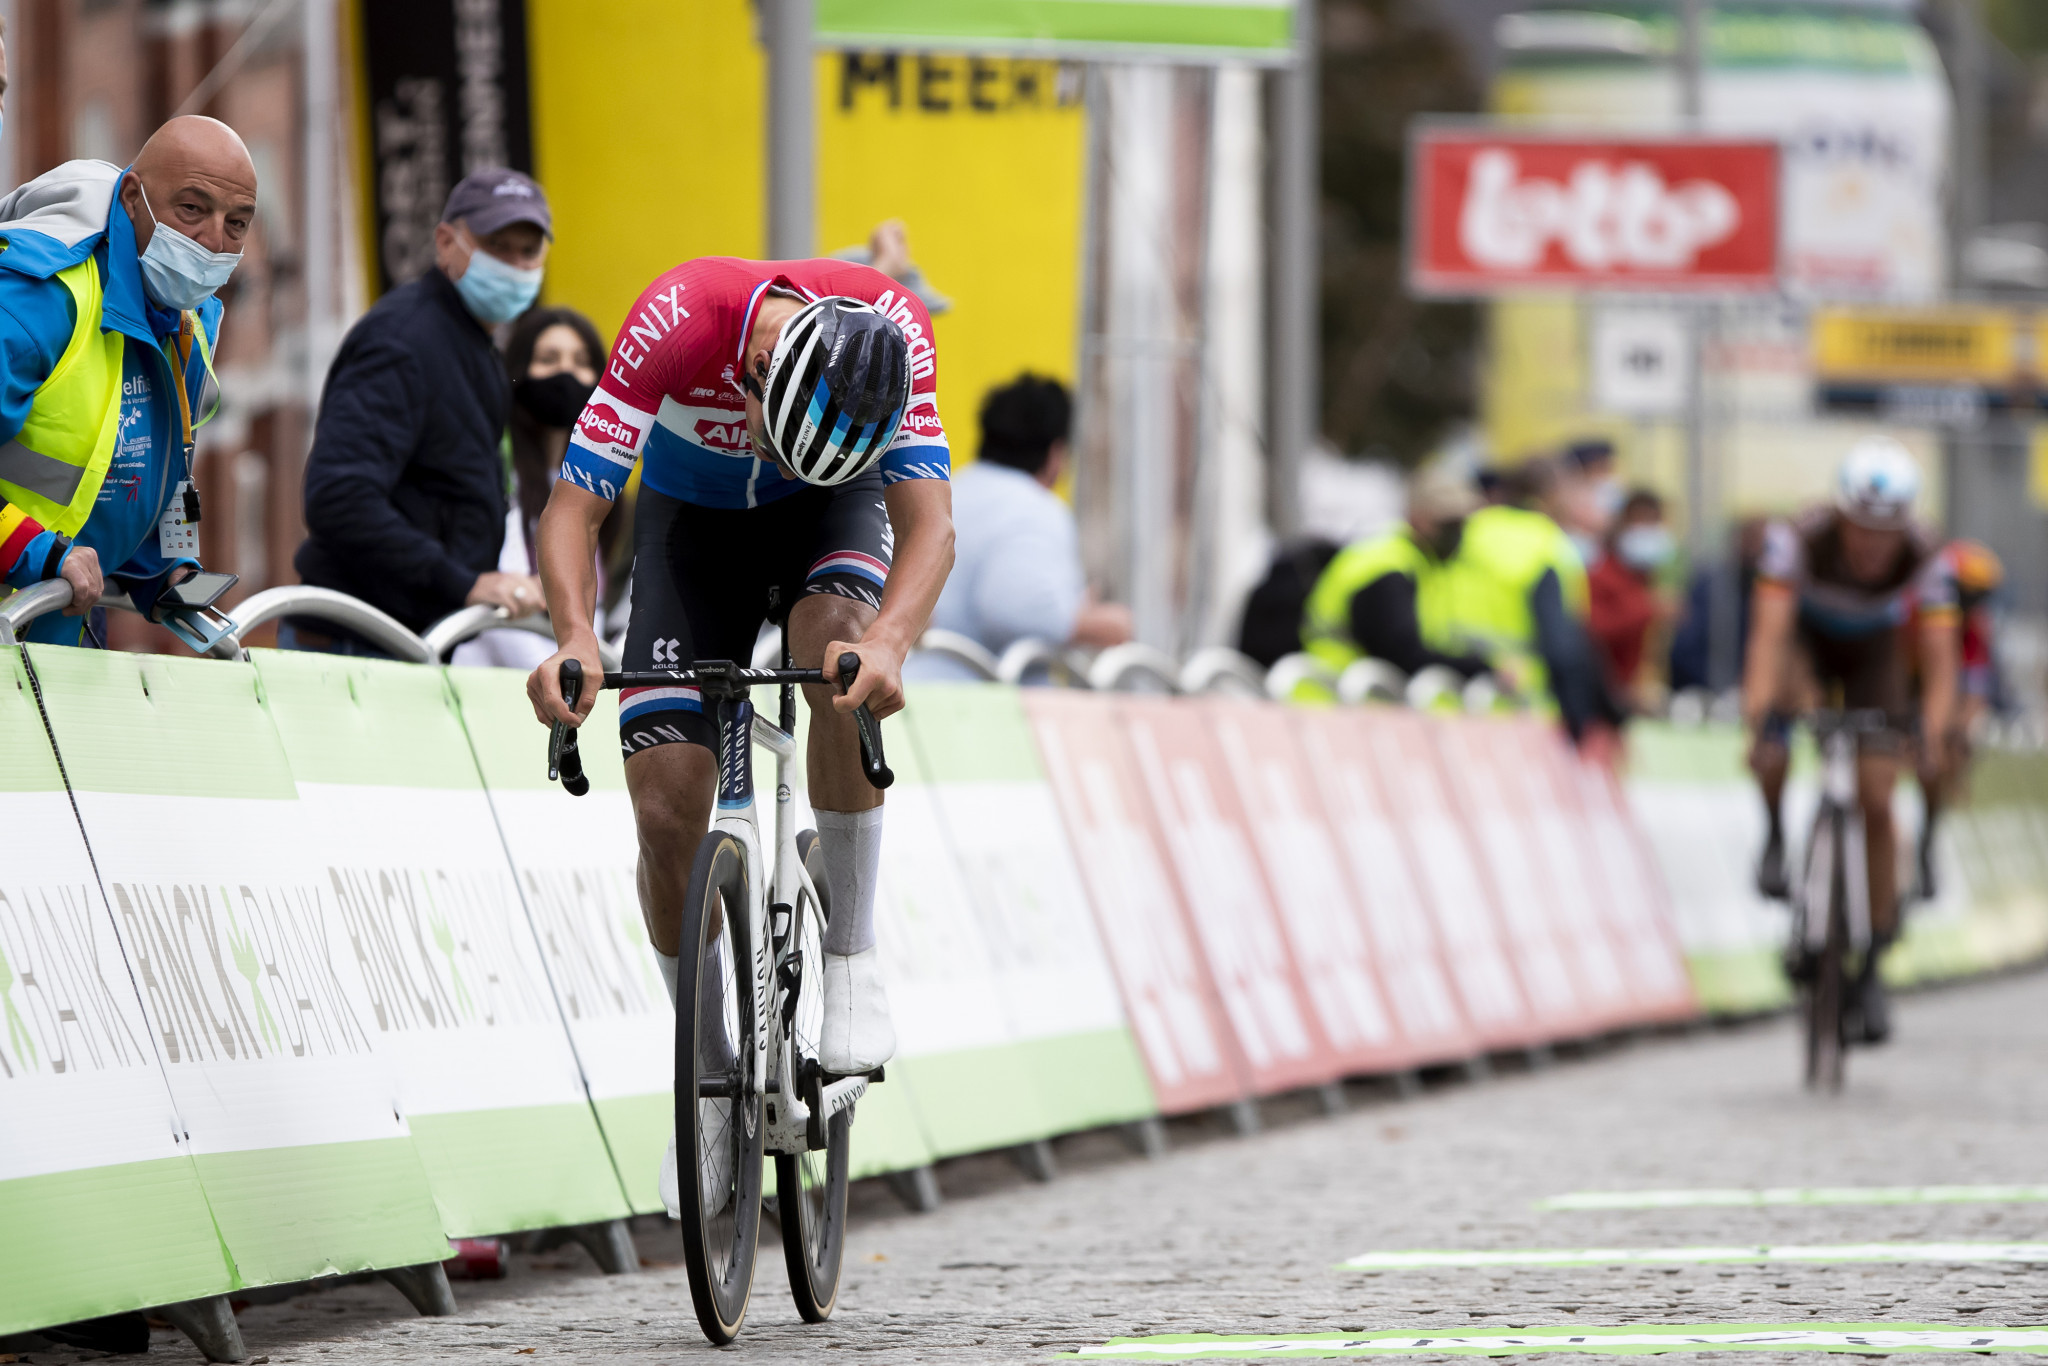 Van der Poel wins BinckBank Tour after daring attack on final stage